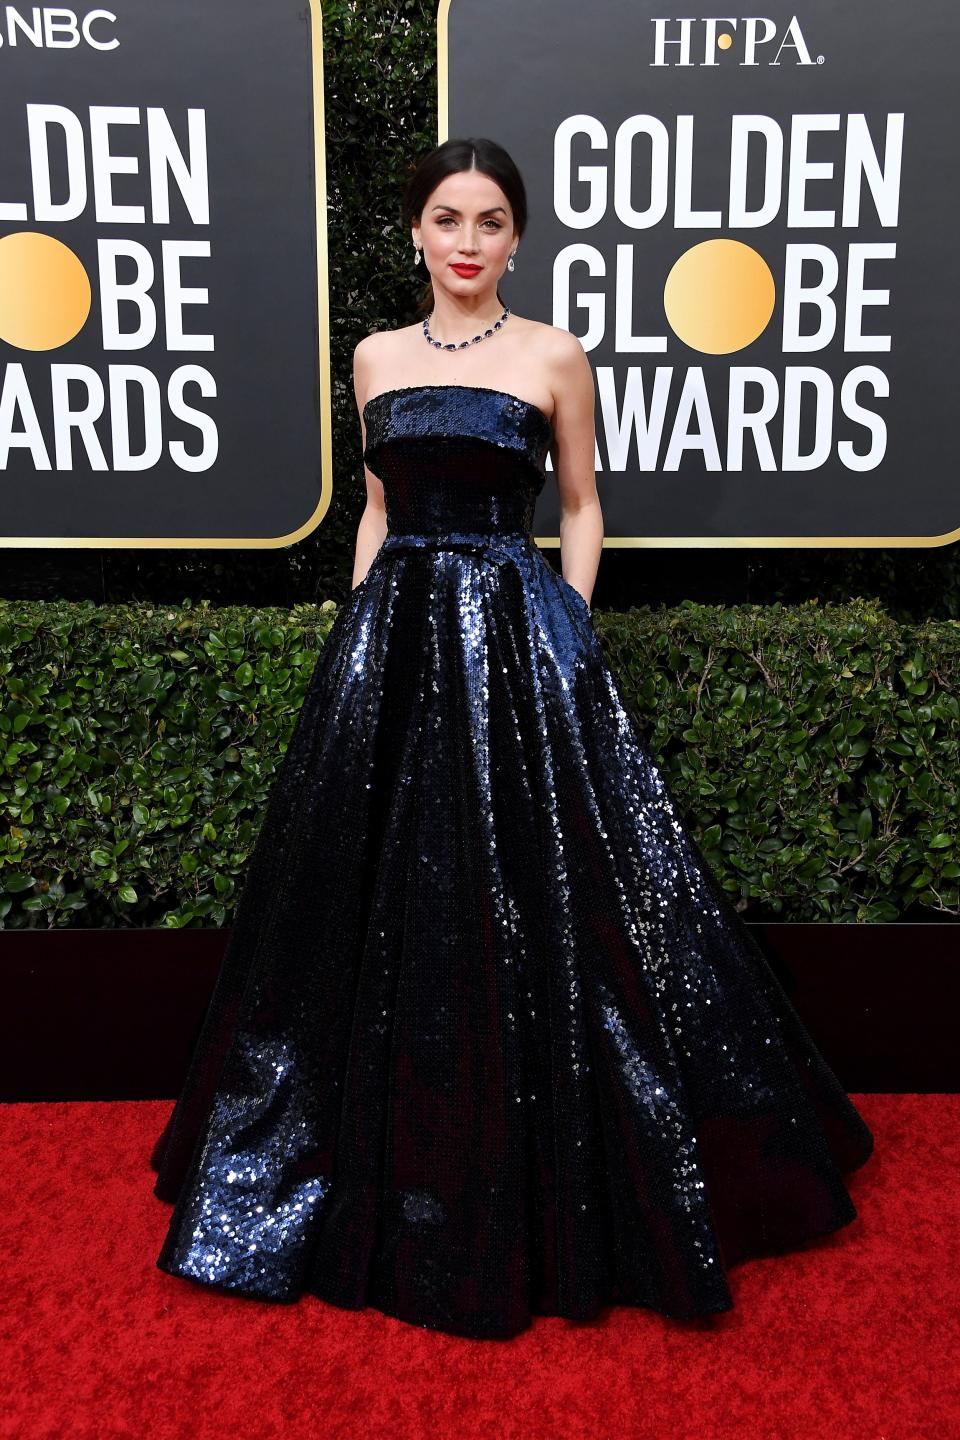 """Best of the night? The standout star of """"Knives Out"""" has absolutely nailed red carpet glam in this gorgeous Ralph Russo blue sequined, midnight blue gown. And it looks like it has pockets?! Perfection."""